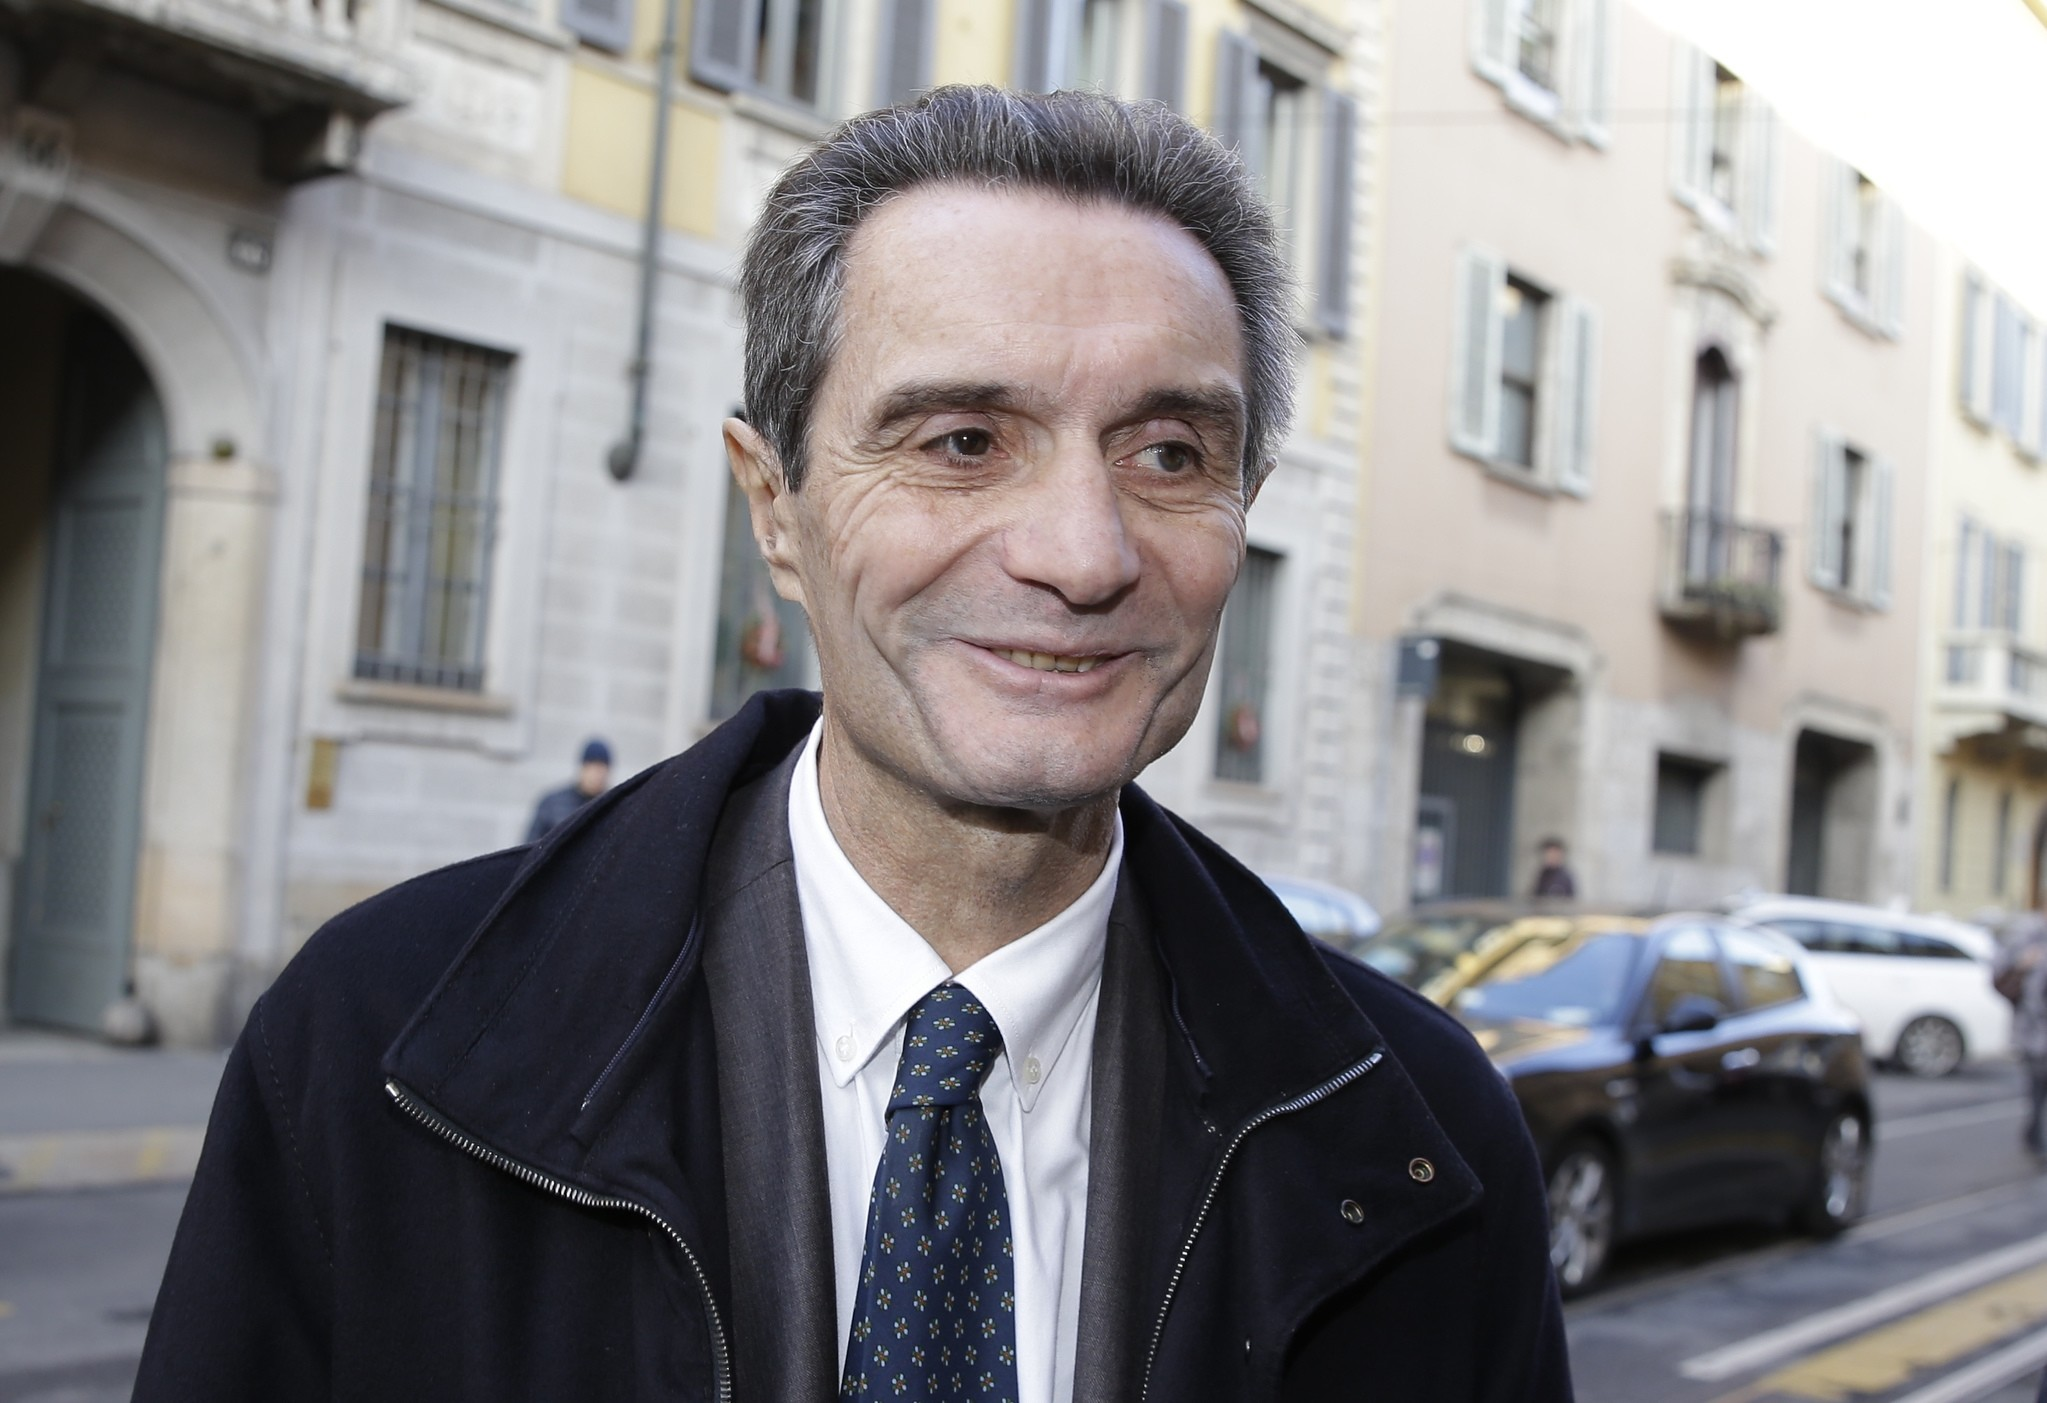 Attilio Fontana arrives for a news conference at the Palazzo ex Stelline, in Milan, Italy. (AP Photo)